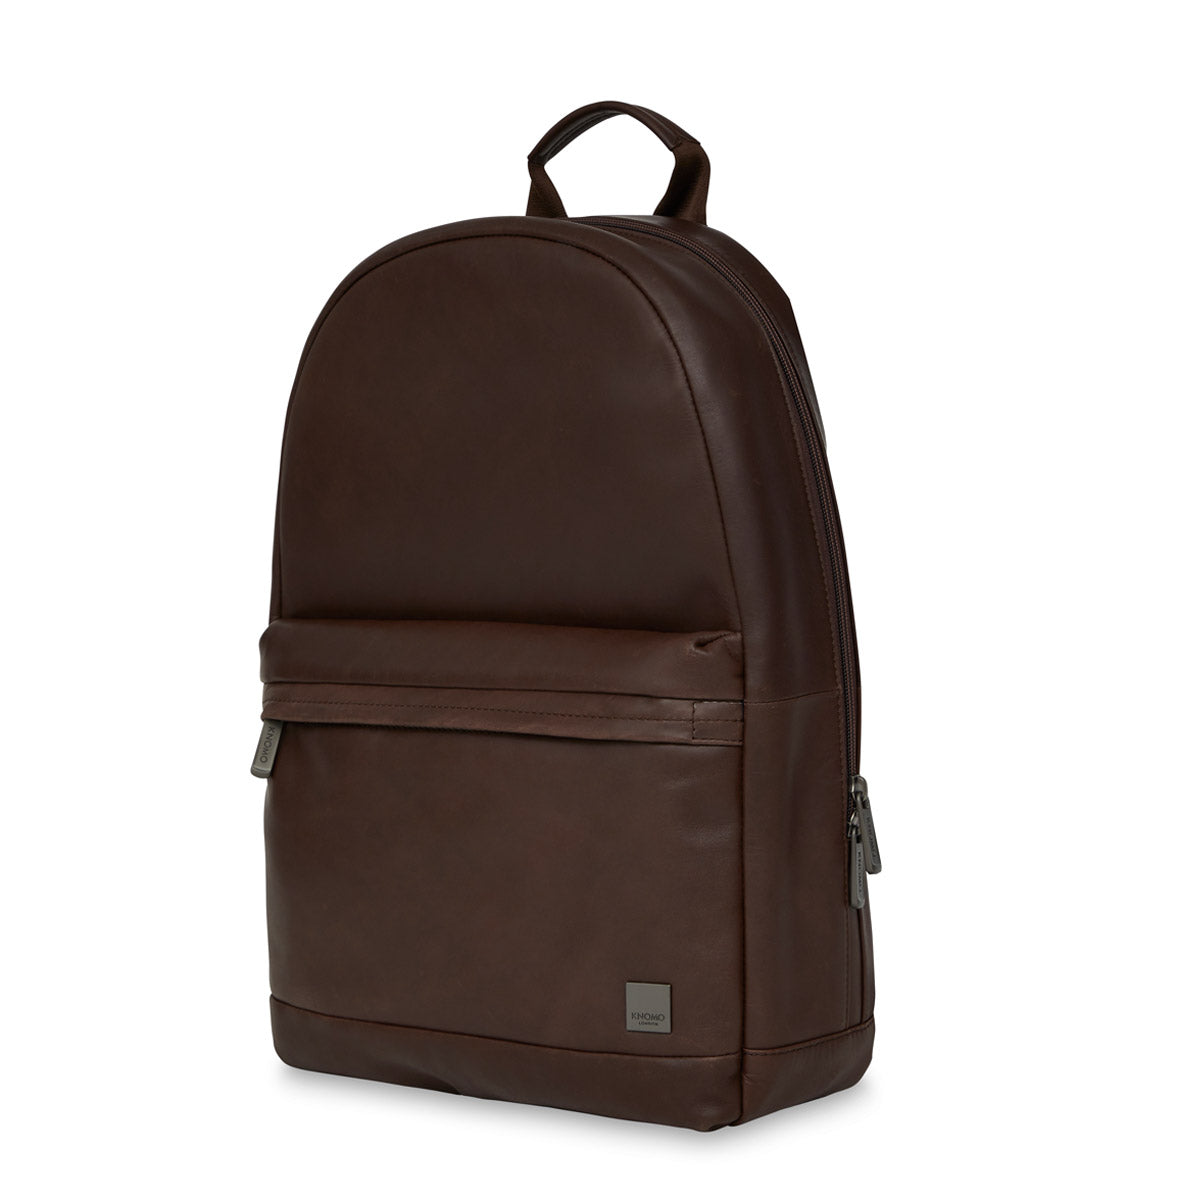 "Albion Leather Laptop Backpack - 15"" -  15"" 